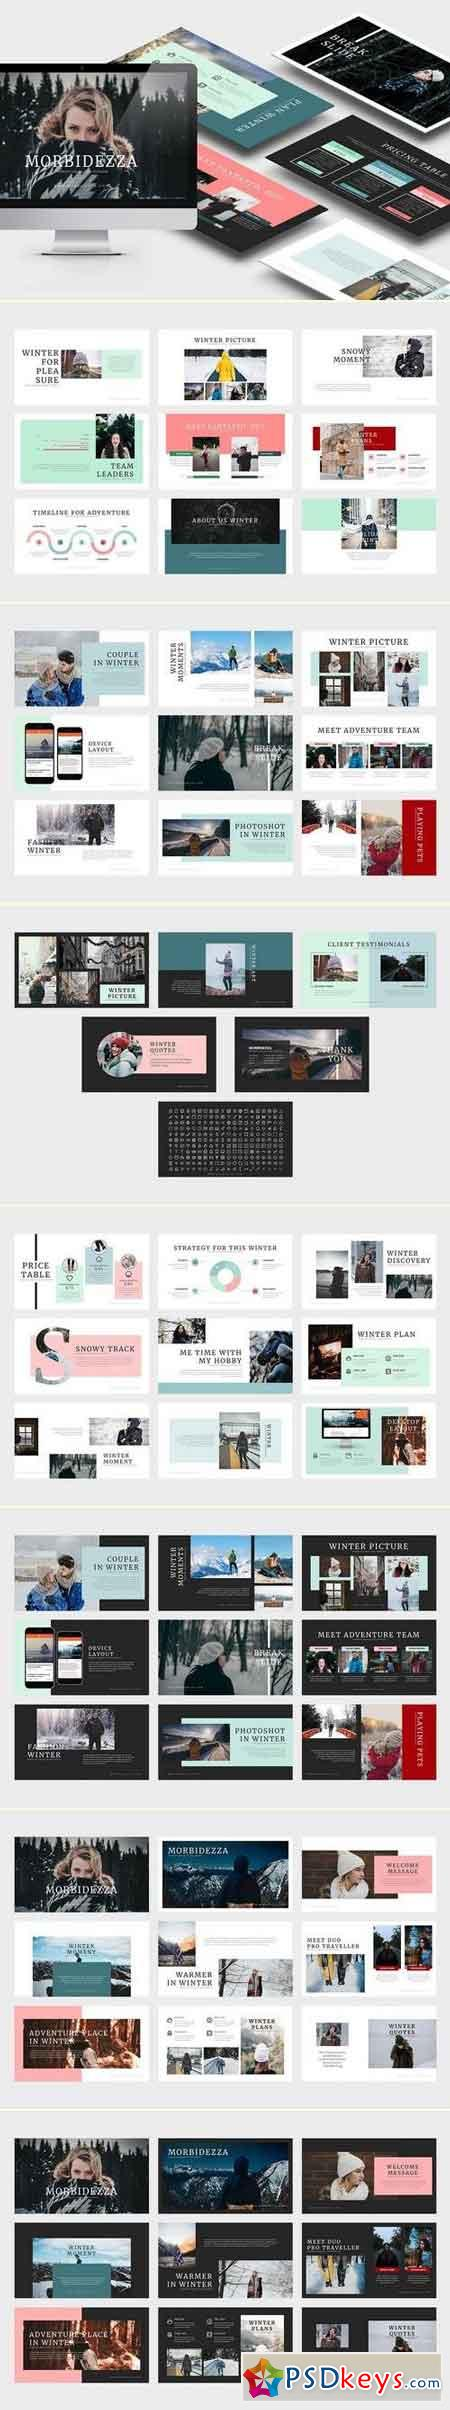 Morbidezza Winter Powerpoint Template